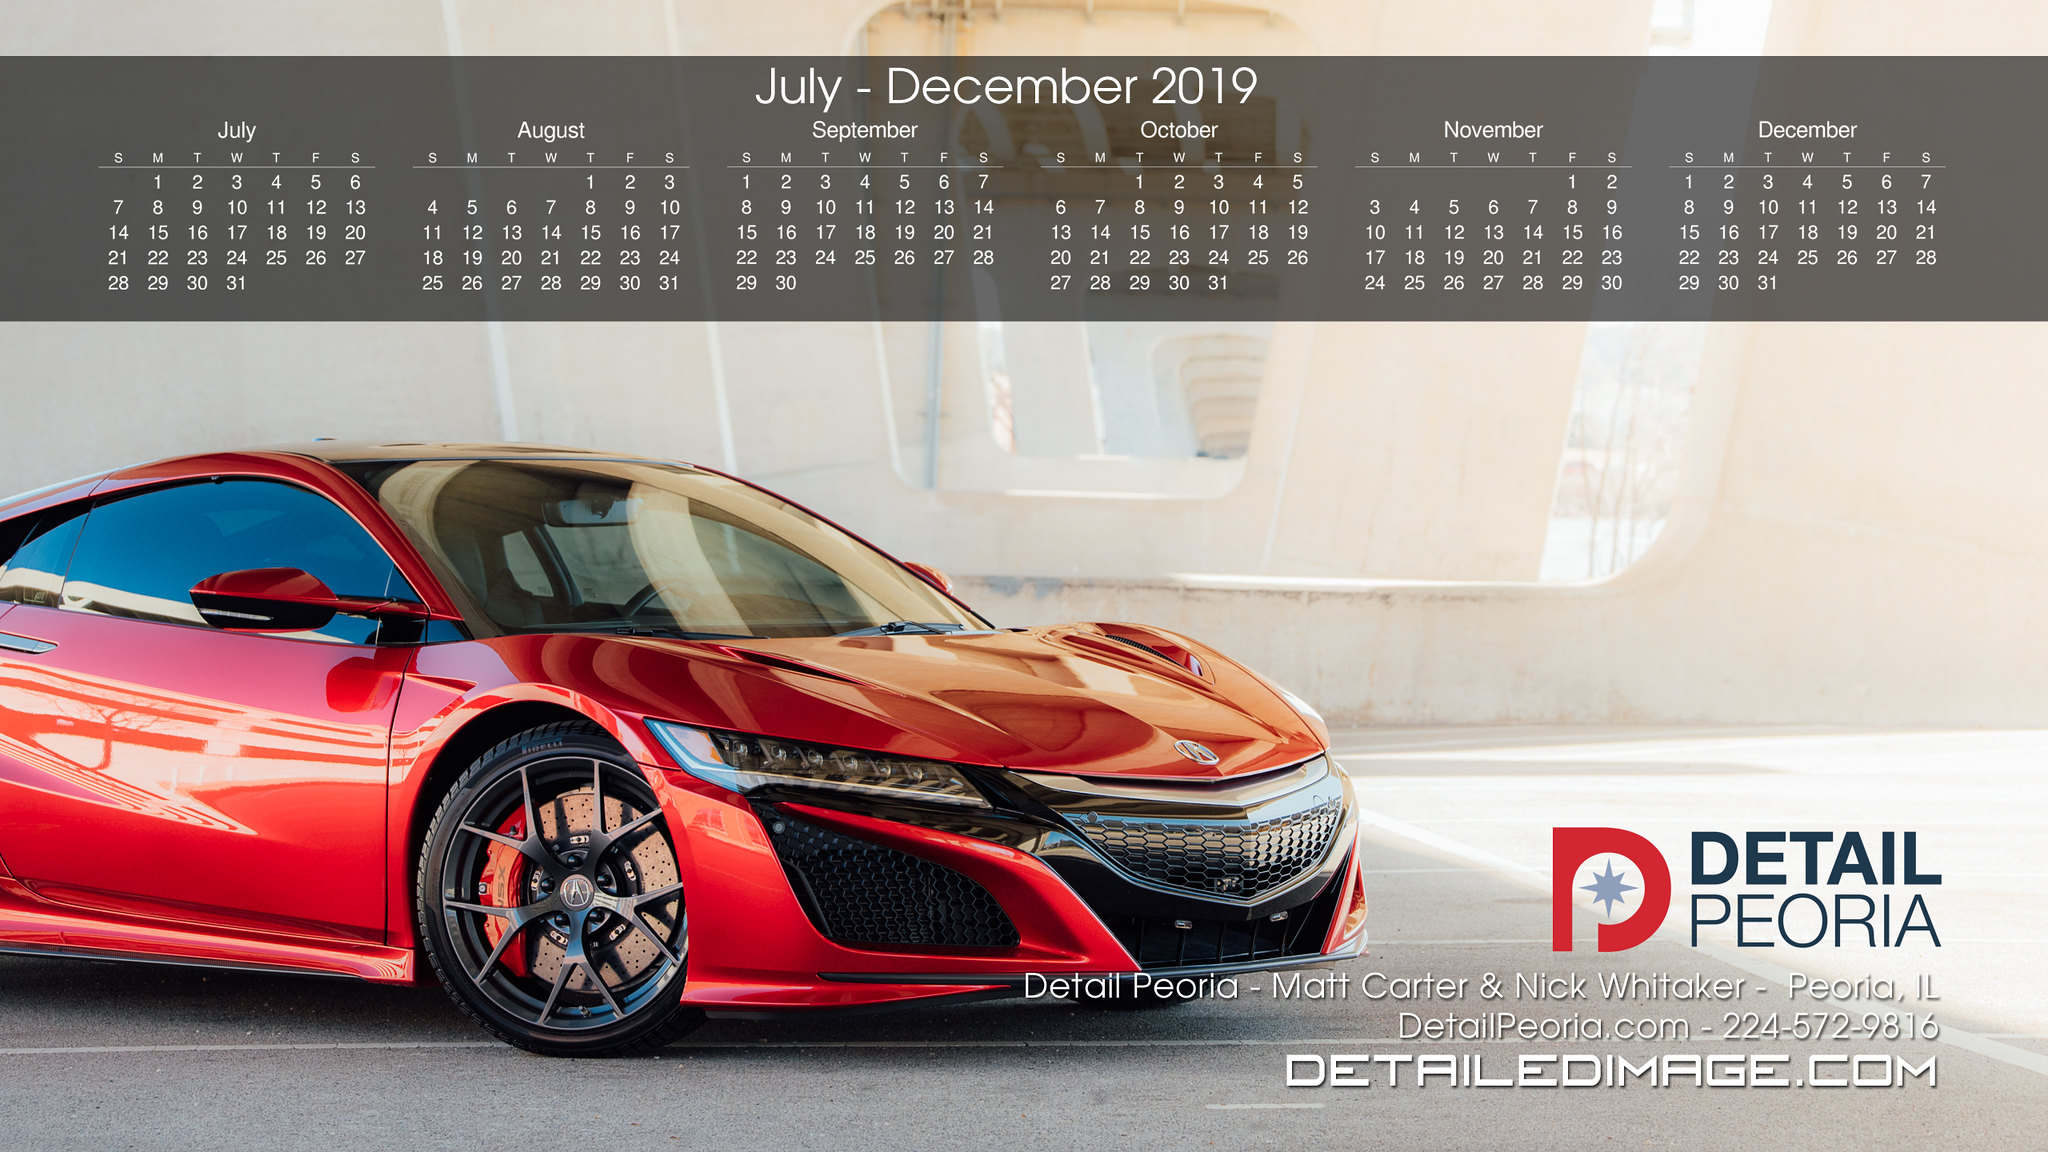 detailing calendars and wallpaper detailed image